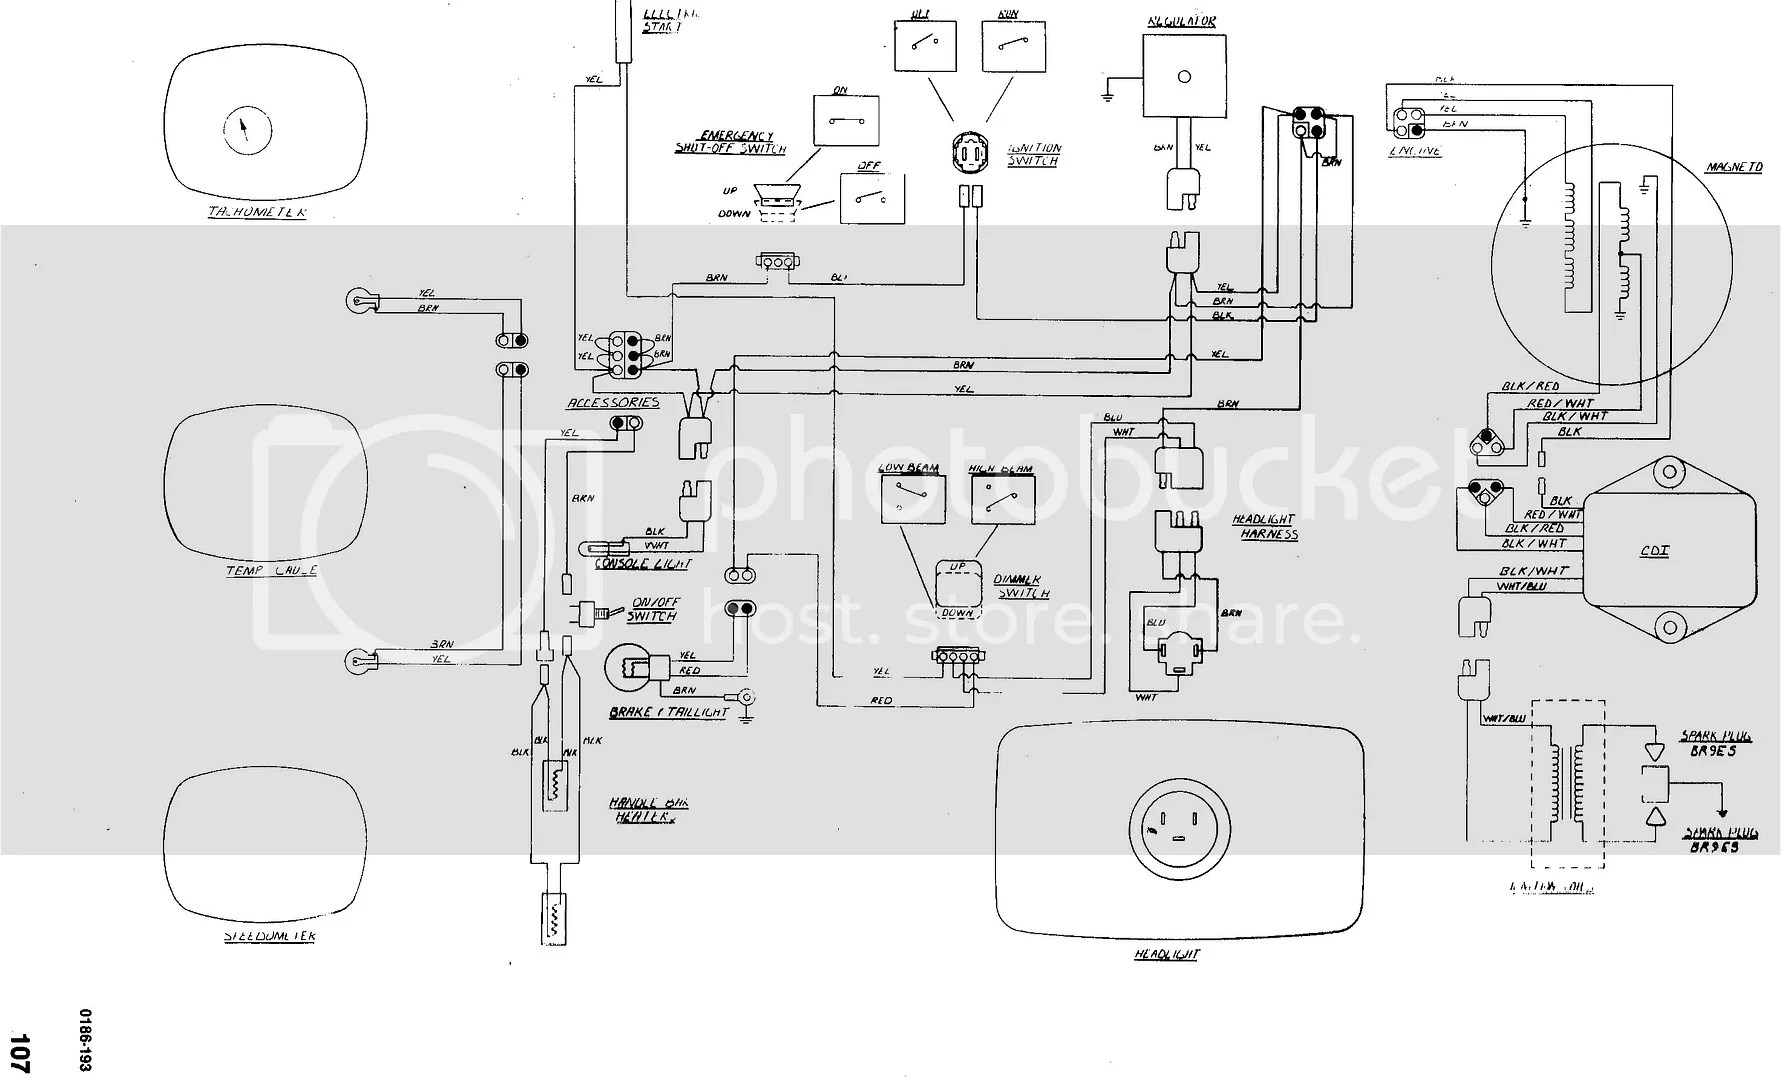 hight resolution of this image has been resized click this bar to view the full image the need wiring diagram for a jag arcticchat com arctic cat